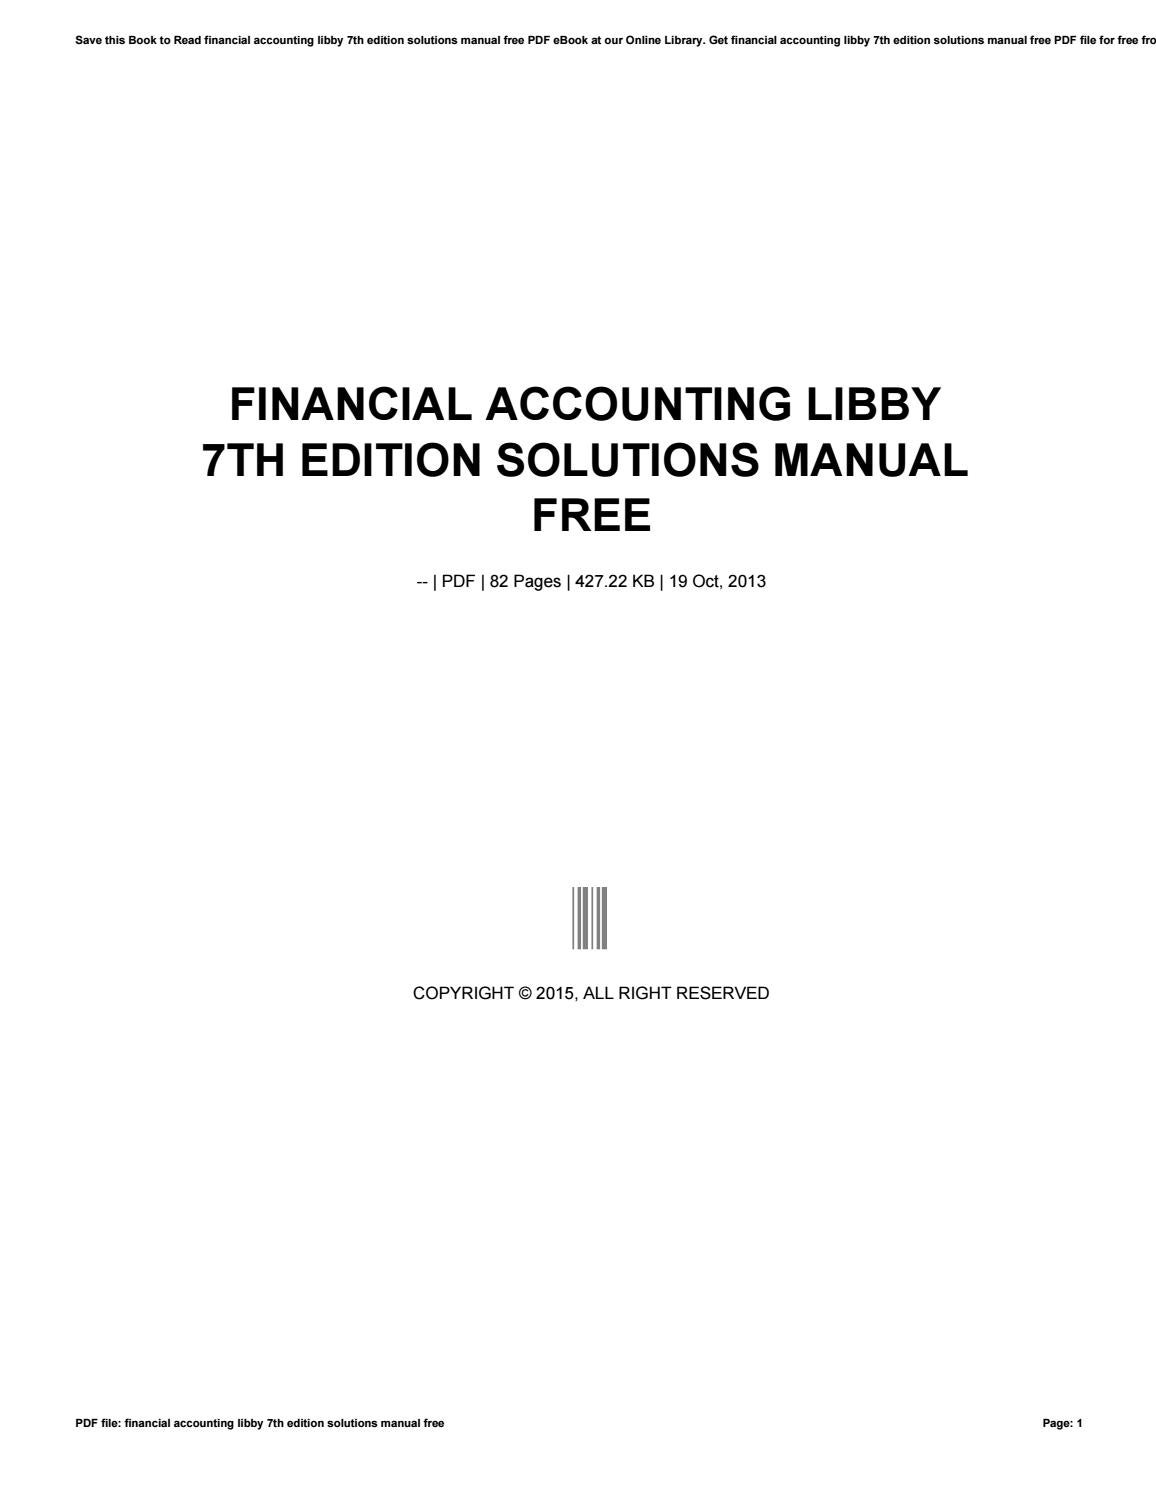 financial accounting libby 7th edition solutions manual free by rh issuu com